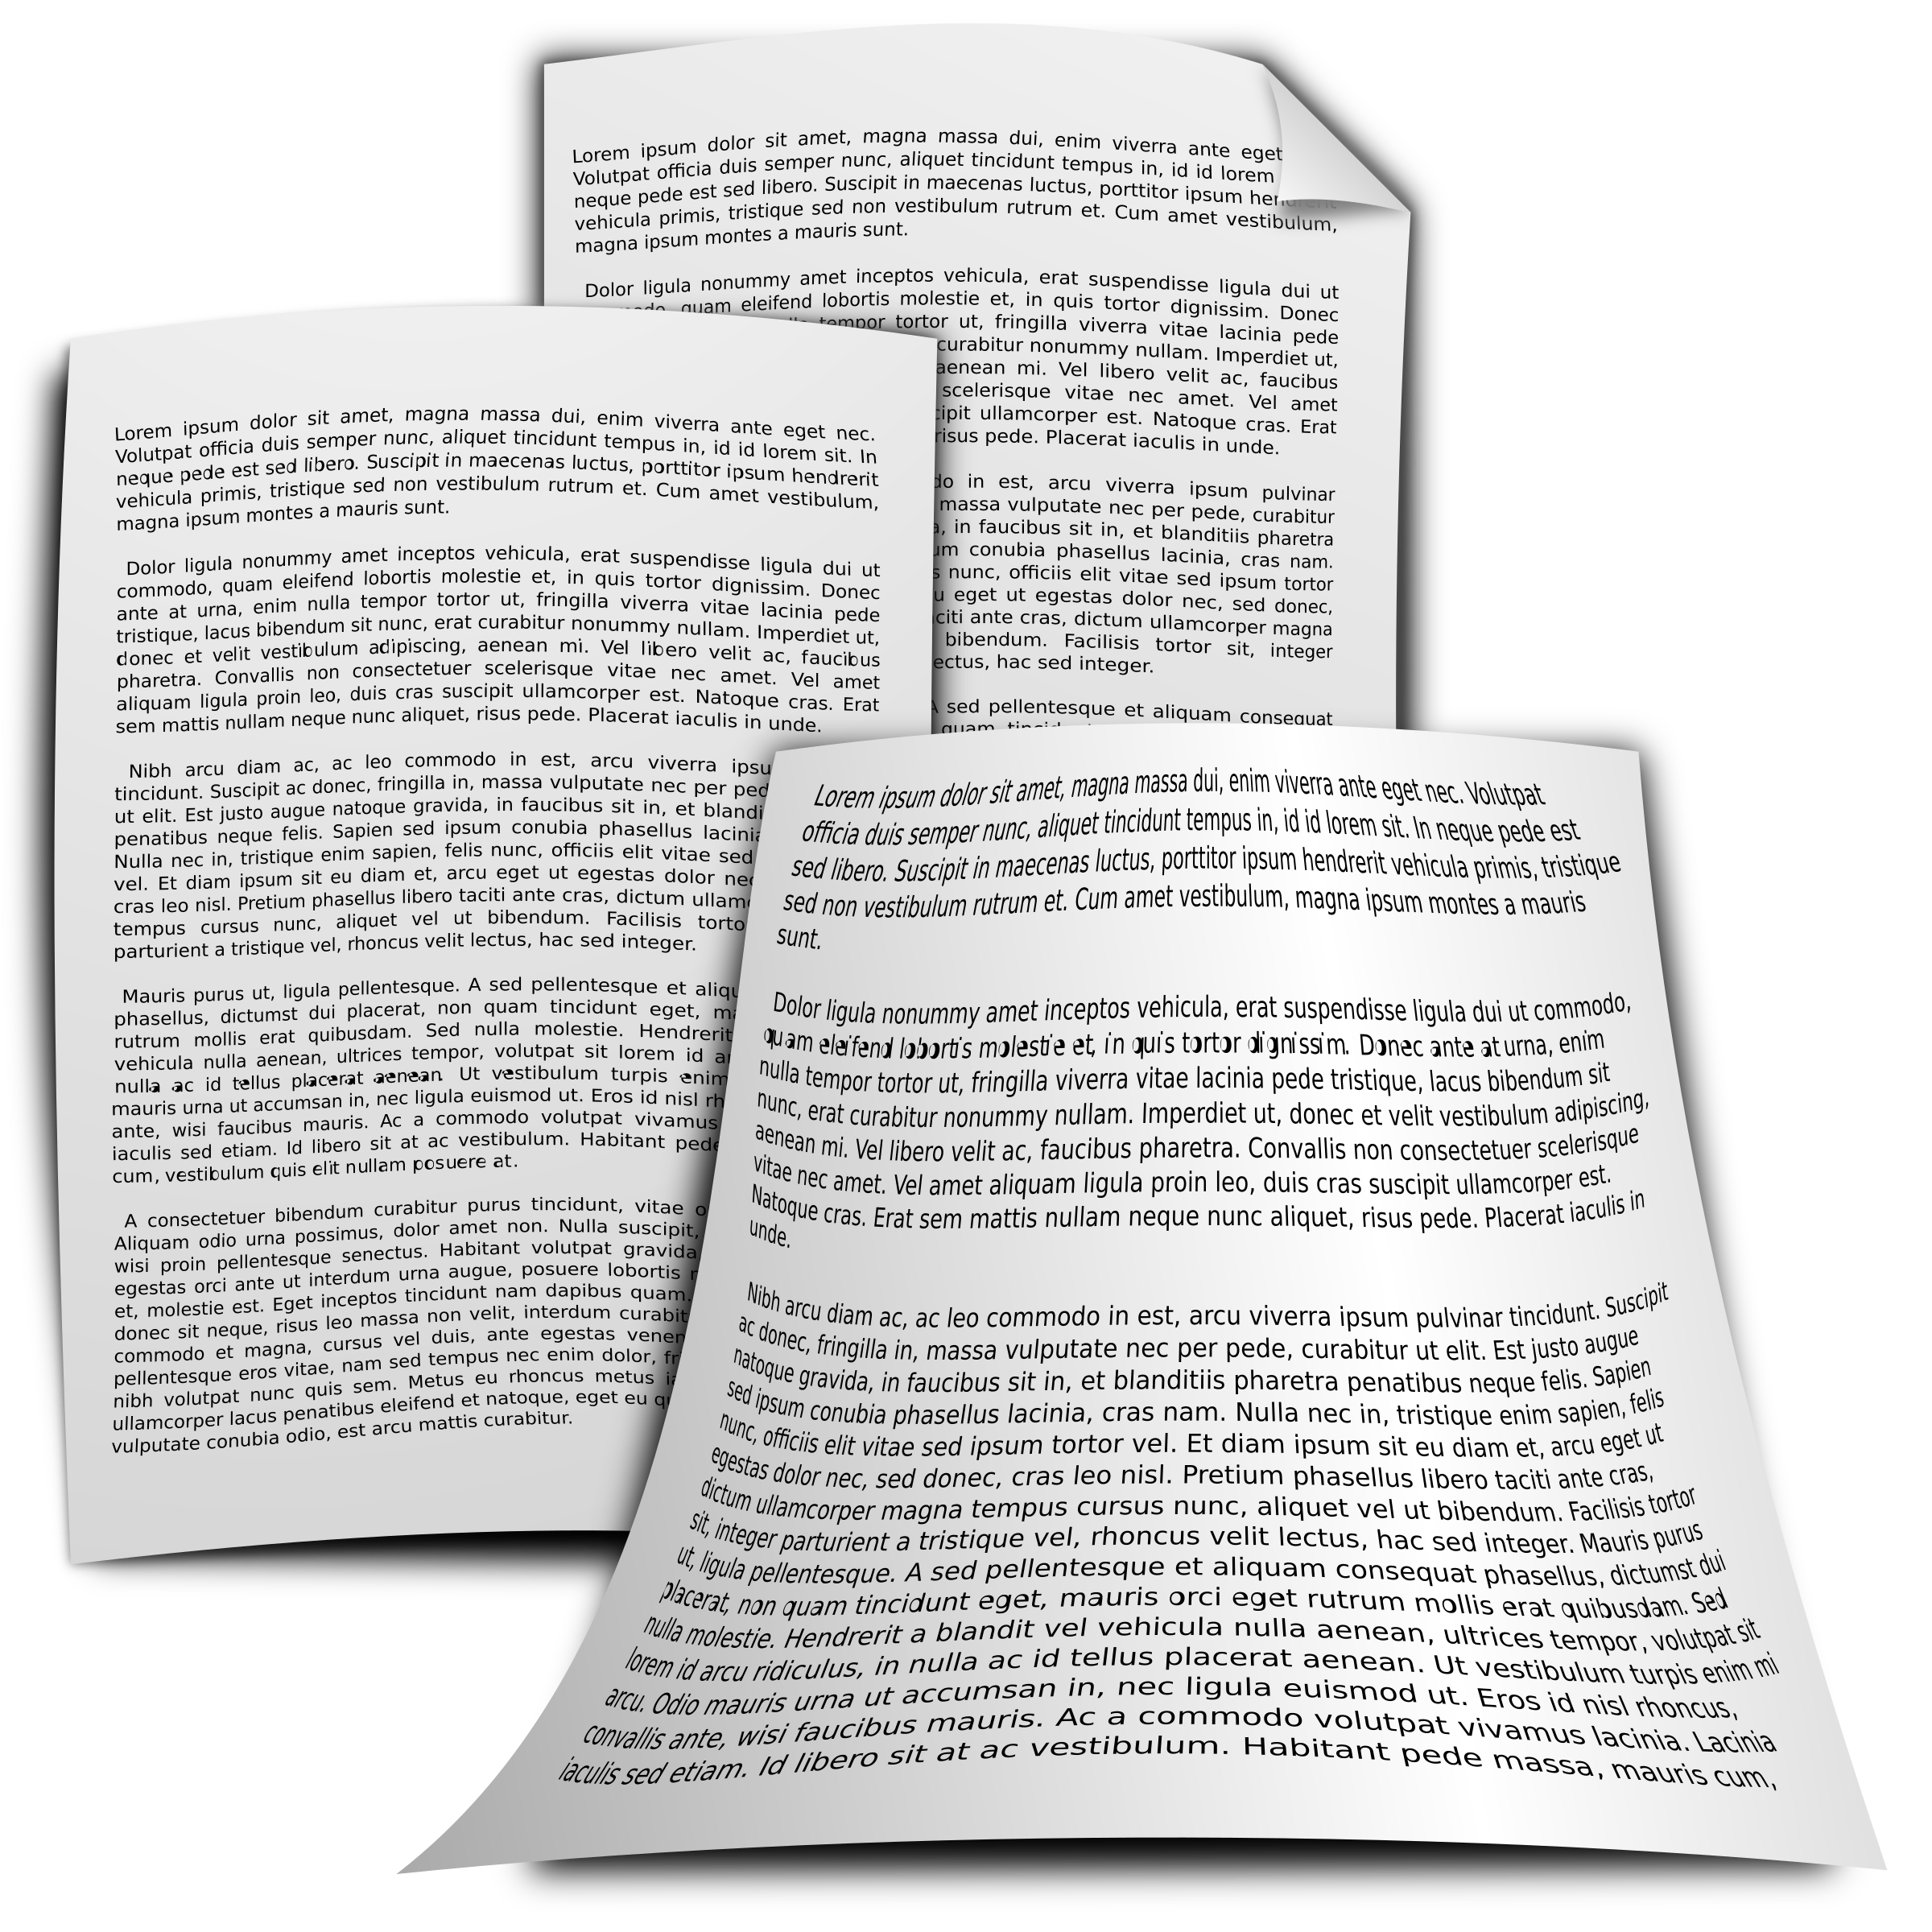 Paper clipart official document. Documents big image png